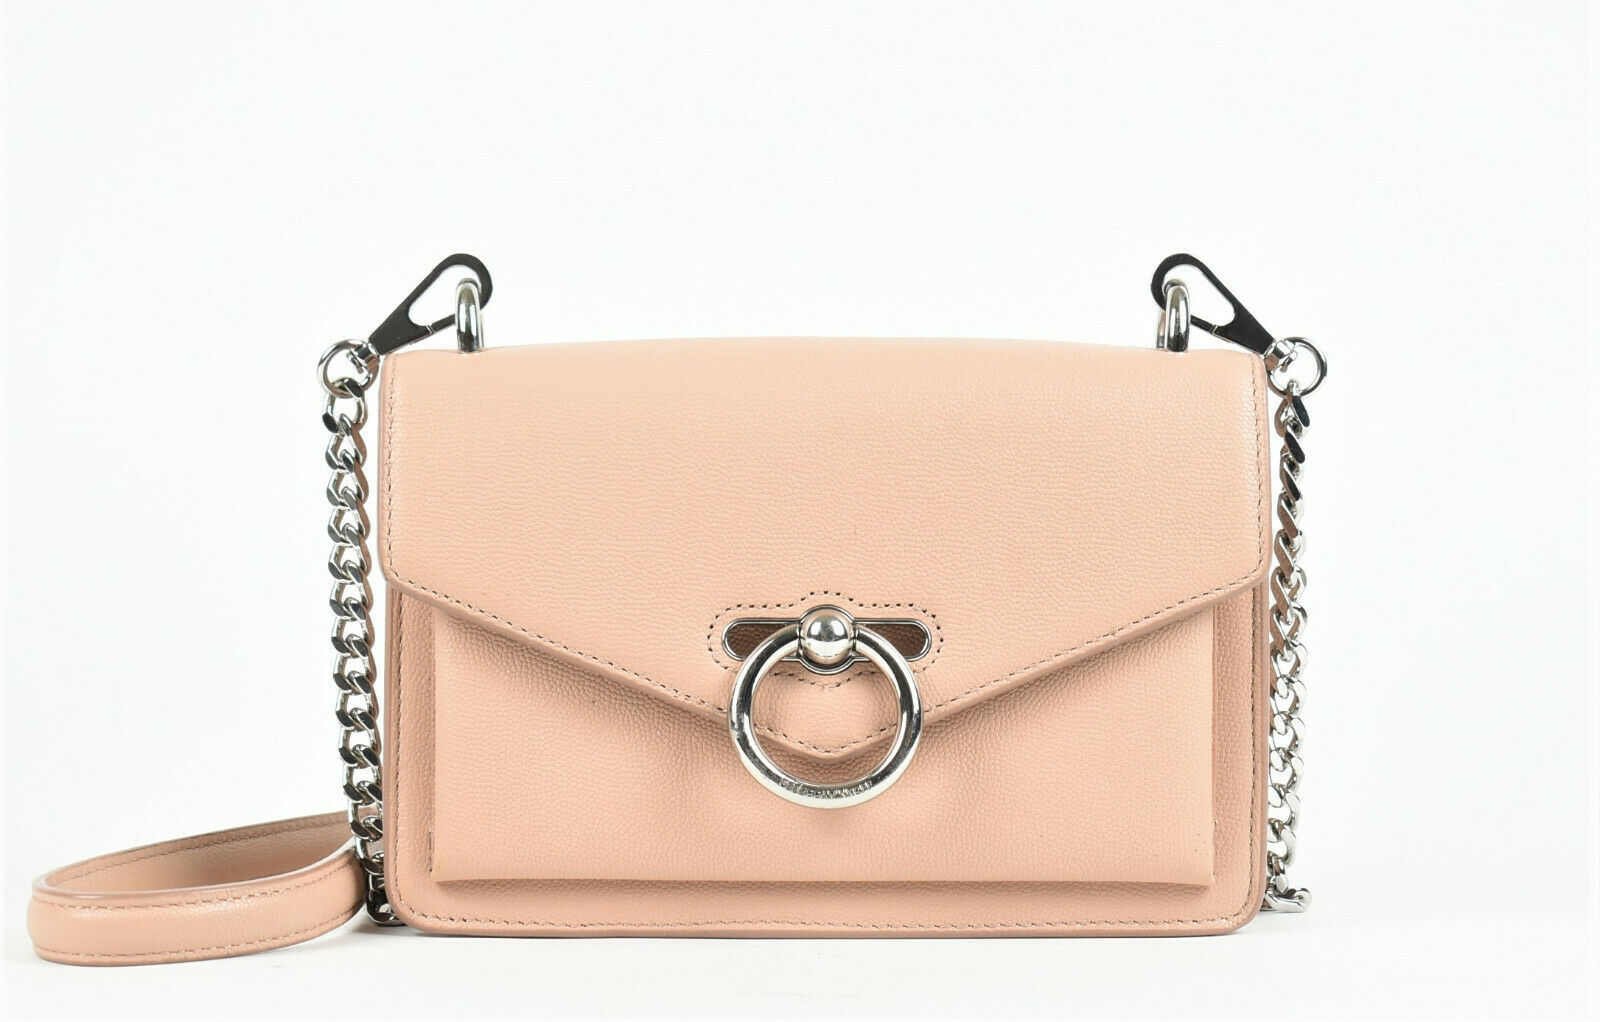 Primary image for Rebecca Minkoff Jean Leather Crossbody Bag - Beige (Retail price - $198)